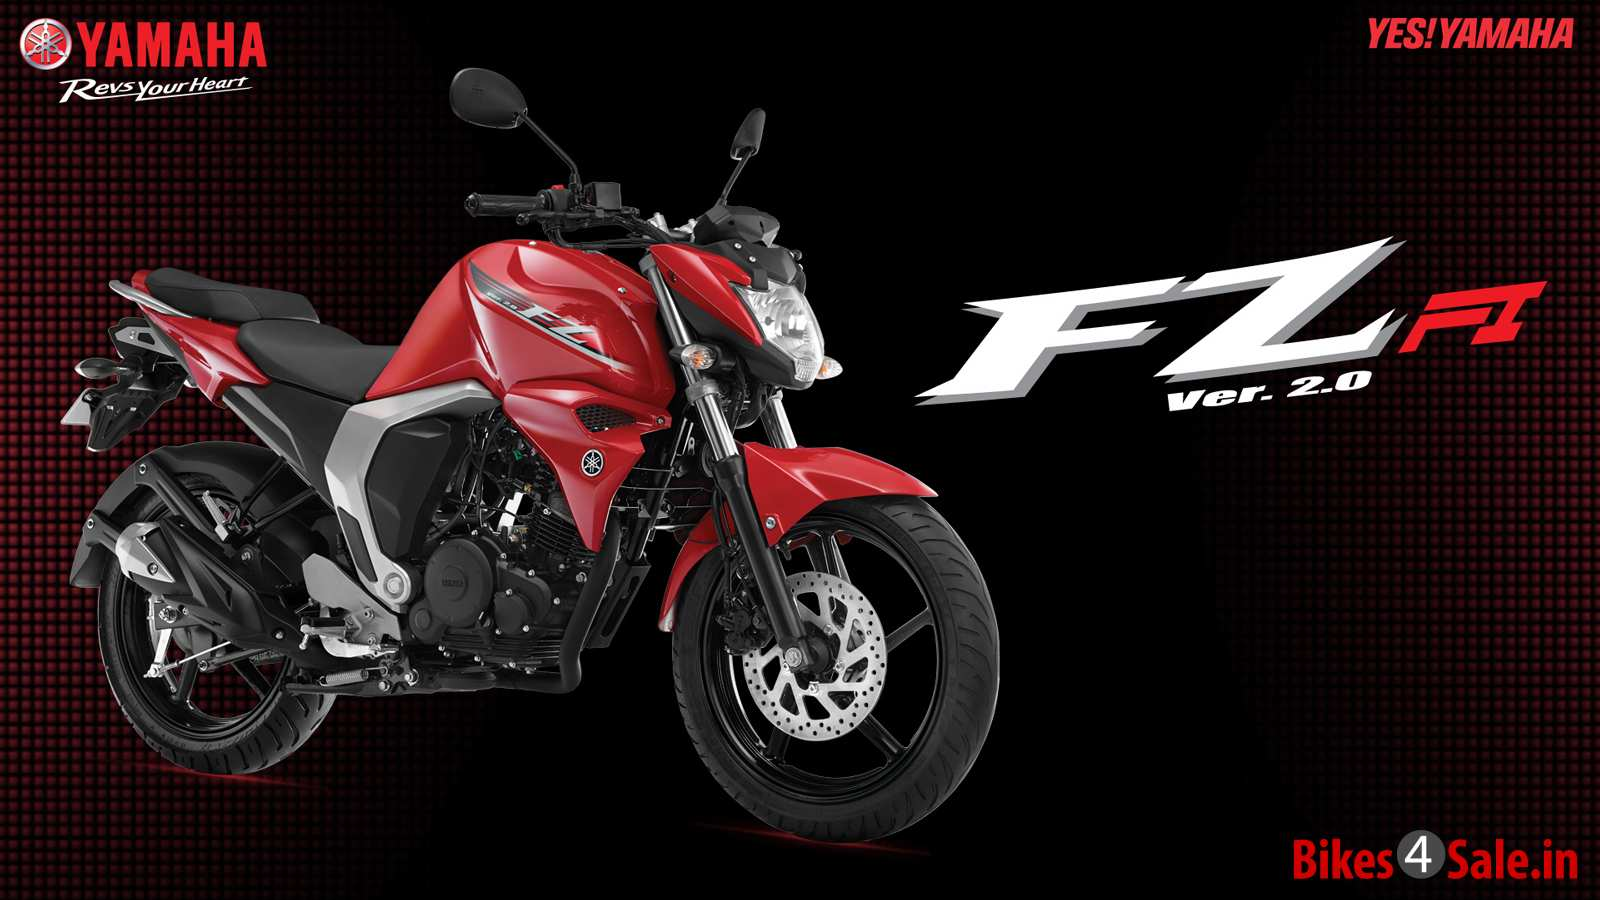 Fz Version 2 Black Colour >> Yamaha FZ FI V2 Motorcycle Picture Gallery - Bikes4Sale